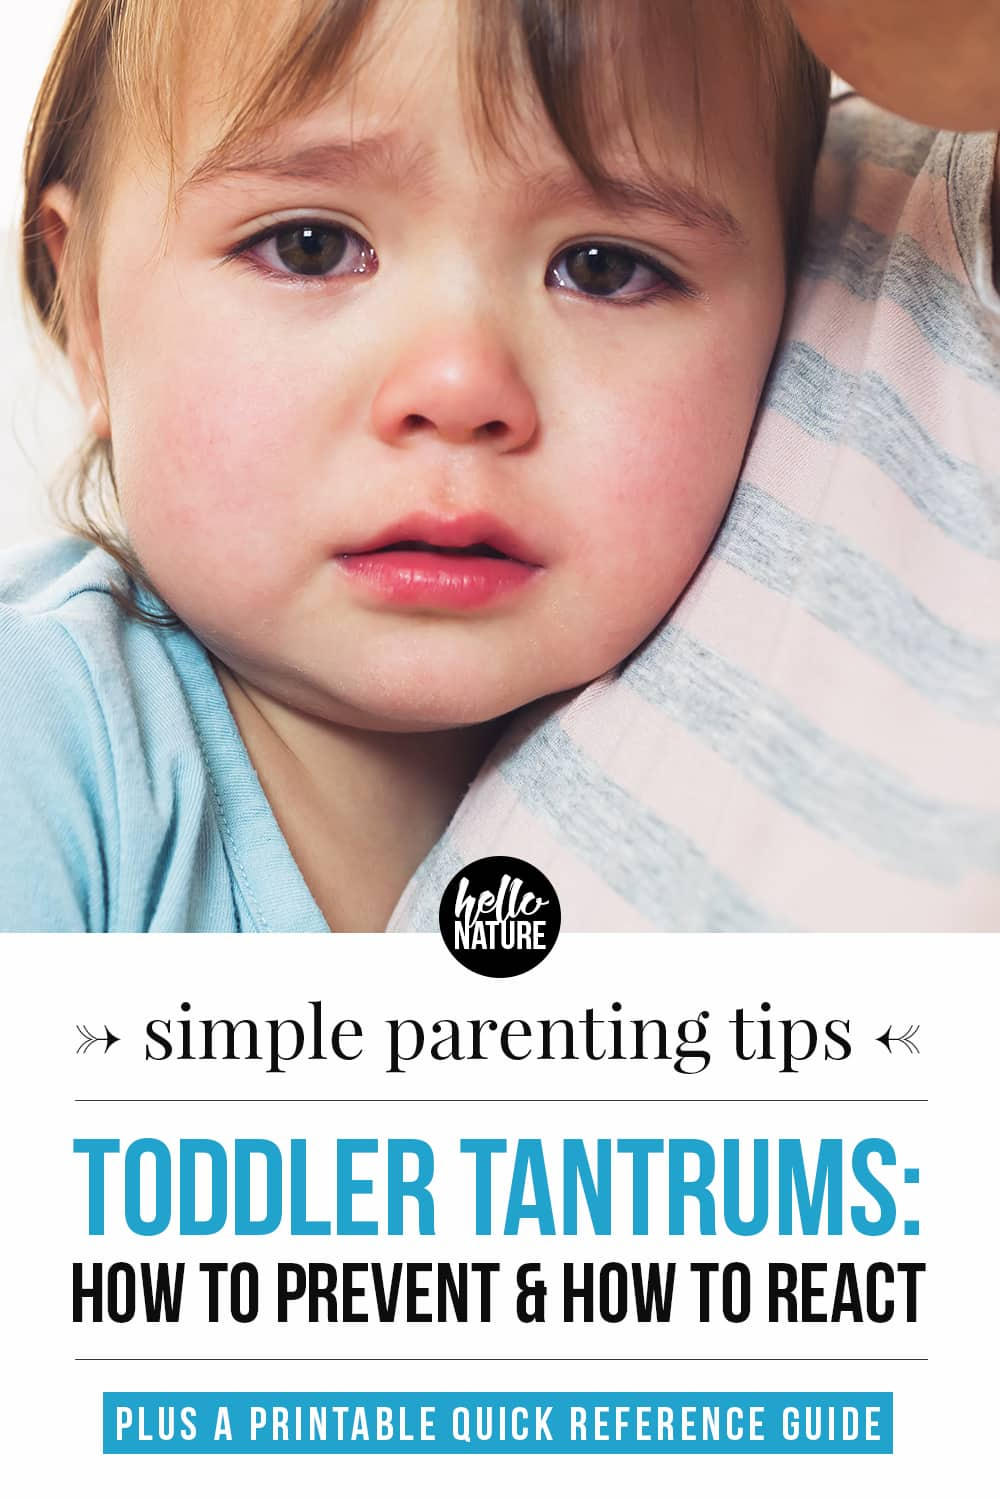 Wondering why toddlers throw temper tantrums? Or maybe you're desperately seeking how to deal with toddler temper tantrums? We've got you covered! You'll learn how to handle toddler tantrums like a pro with this post and the free quick reference printable we've included.